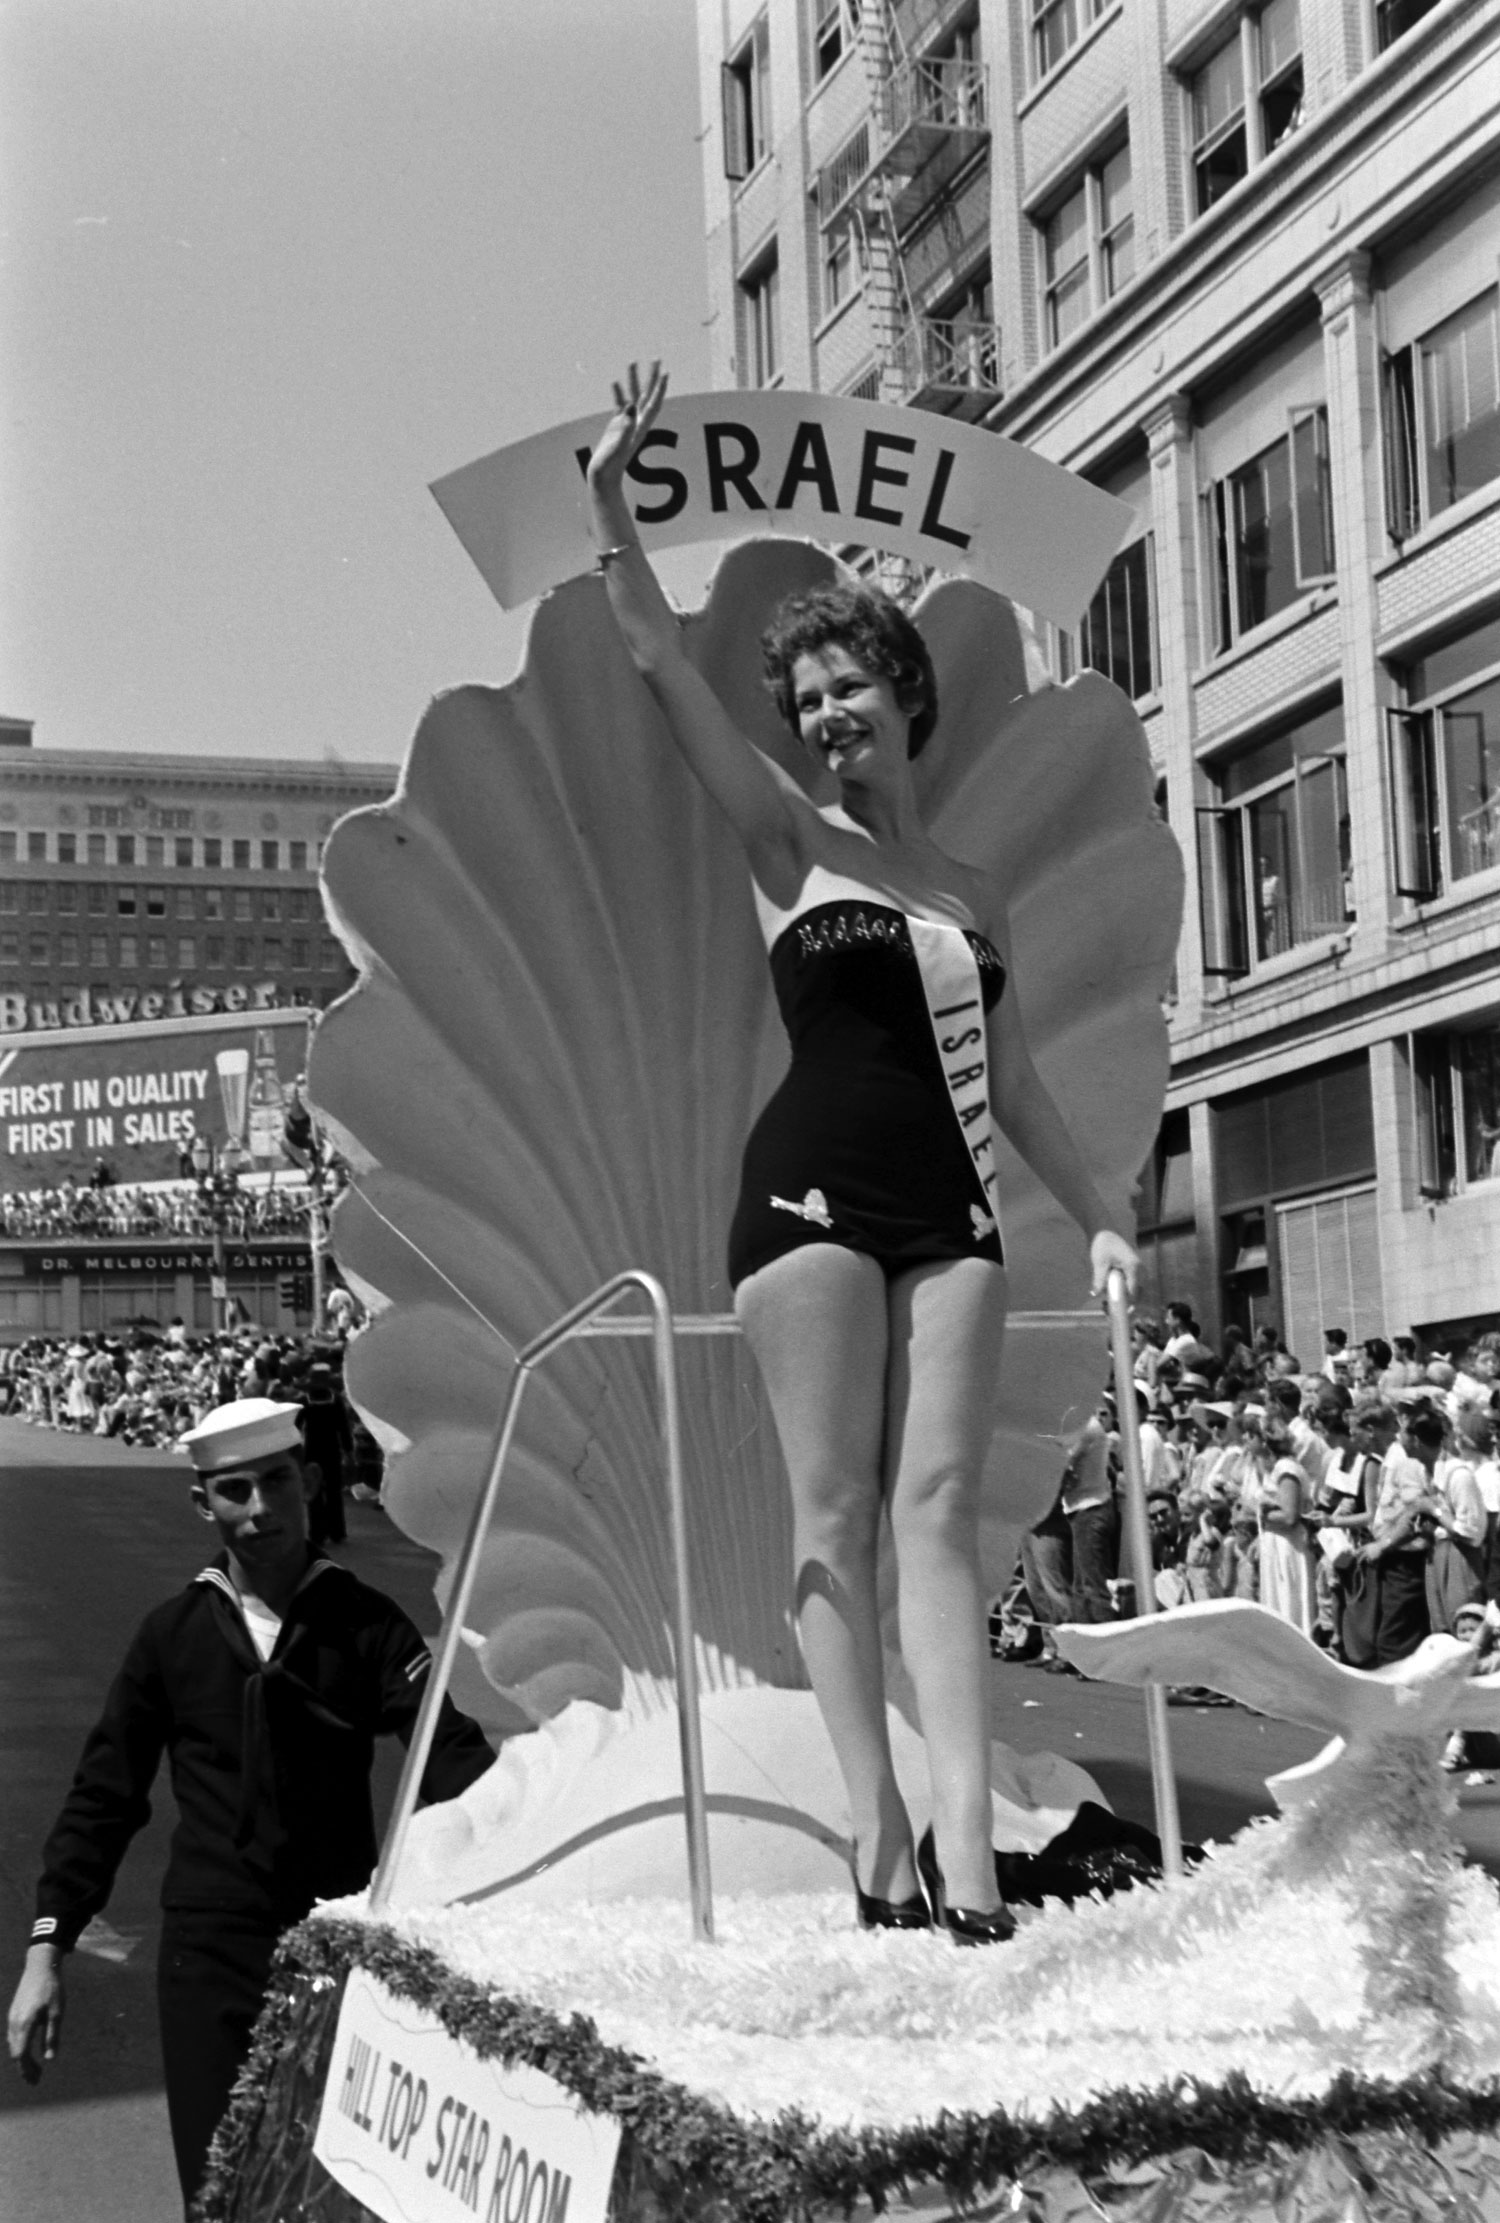 Miss Israel waves from a float, 1954.